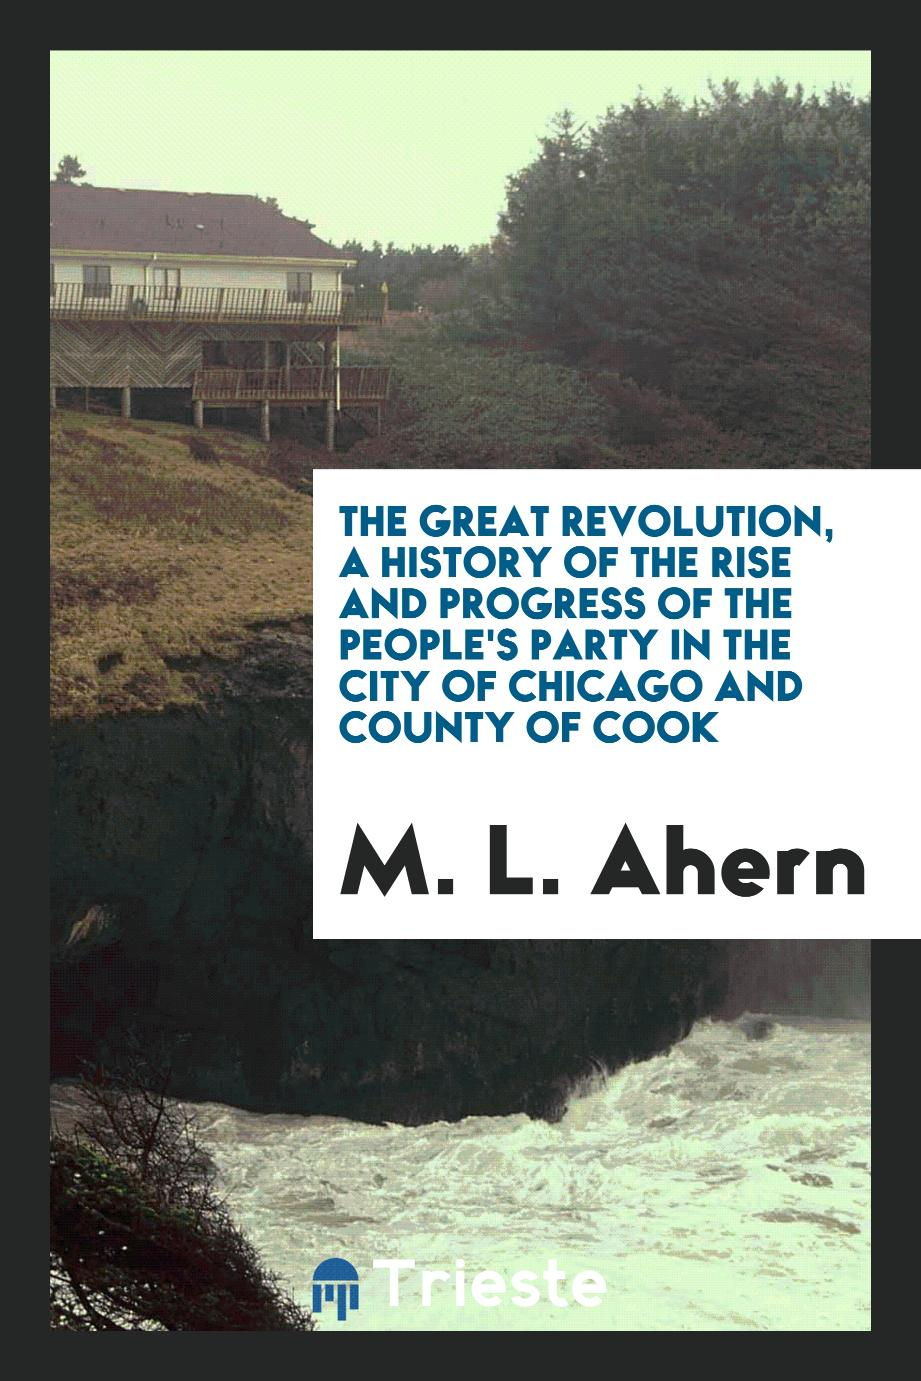 The great revolution, a history of the rise and progress of the People's Party in the city of Chicago and county of Cook